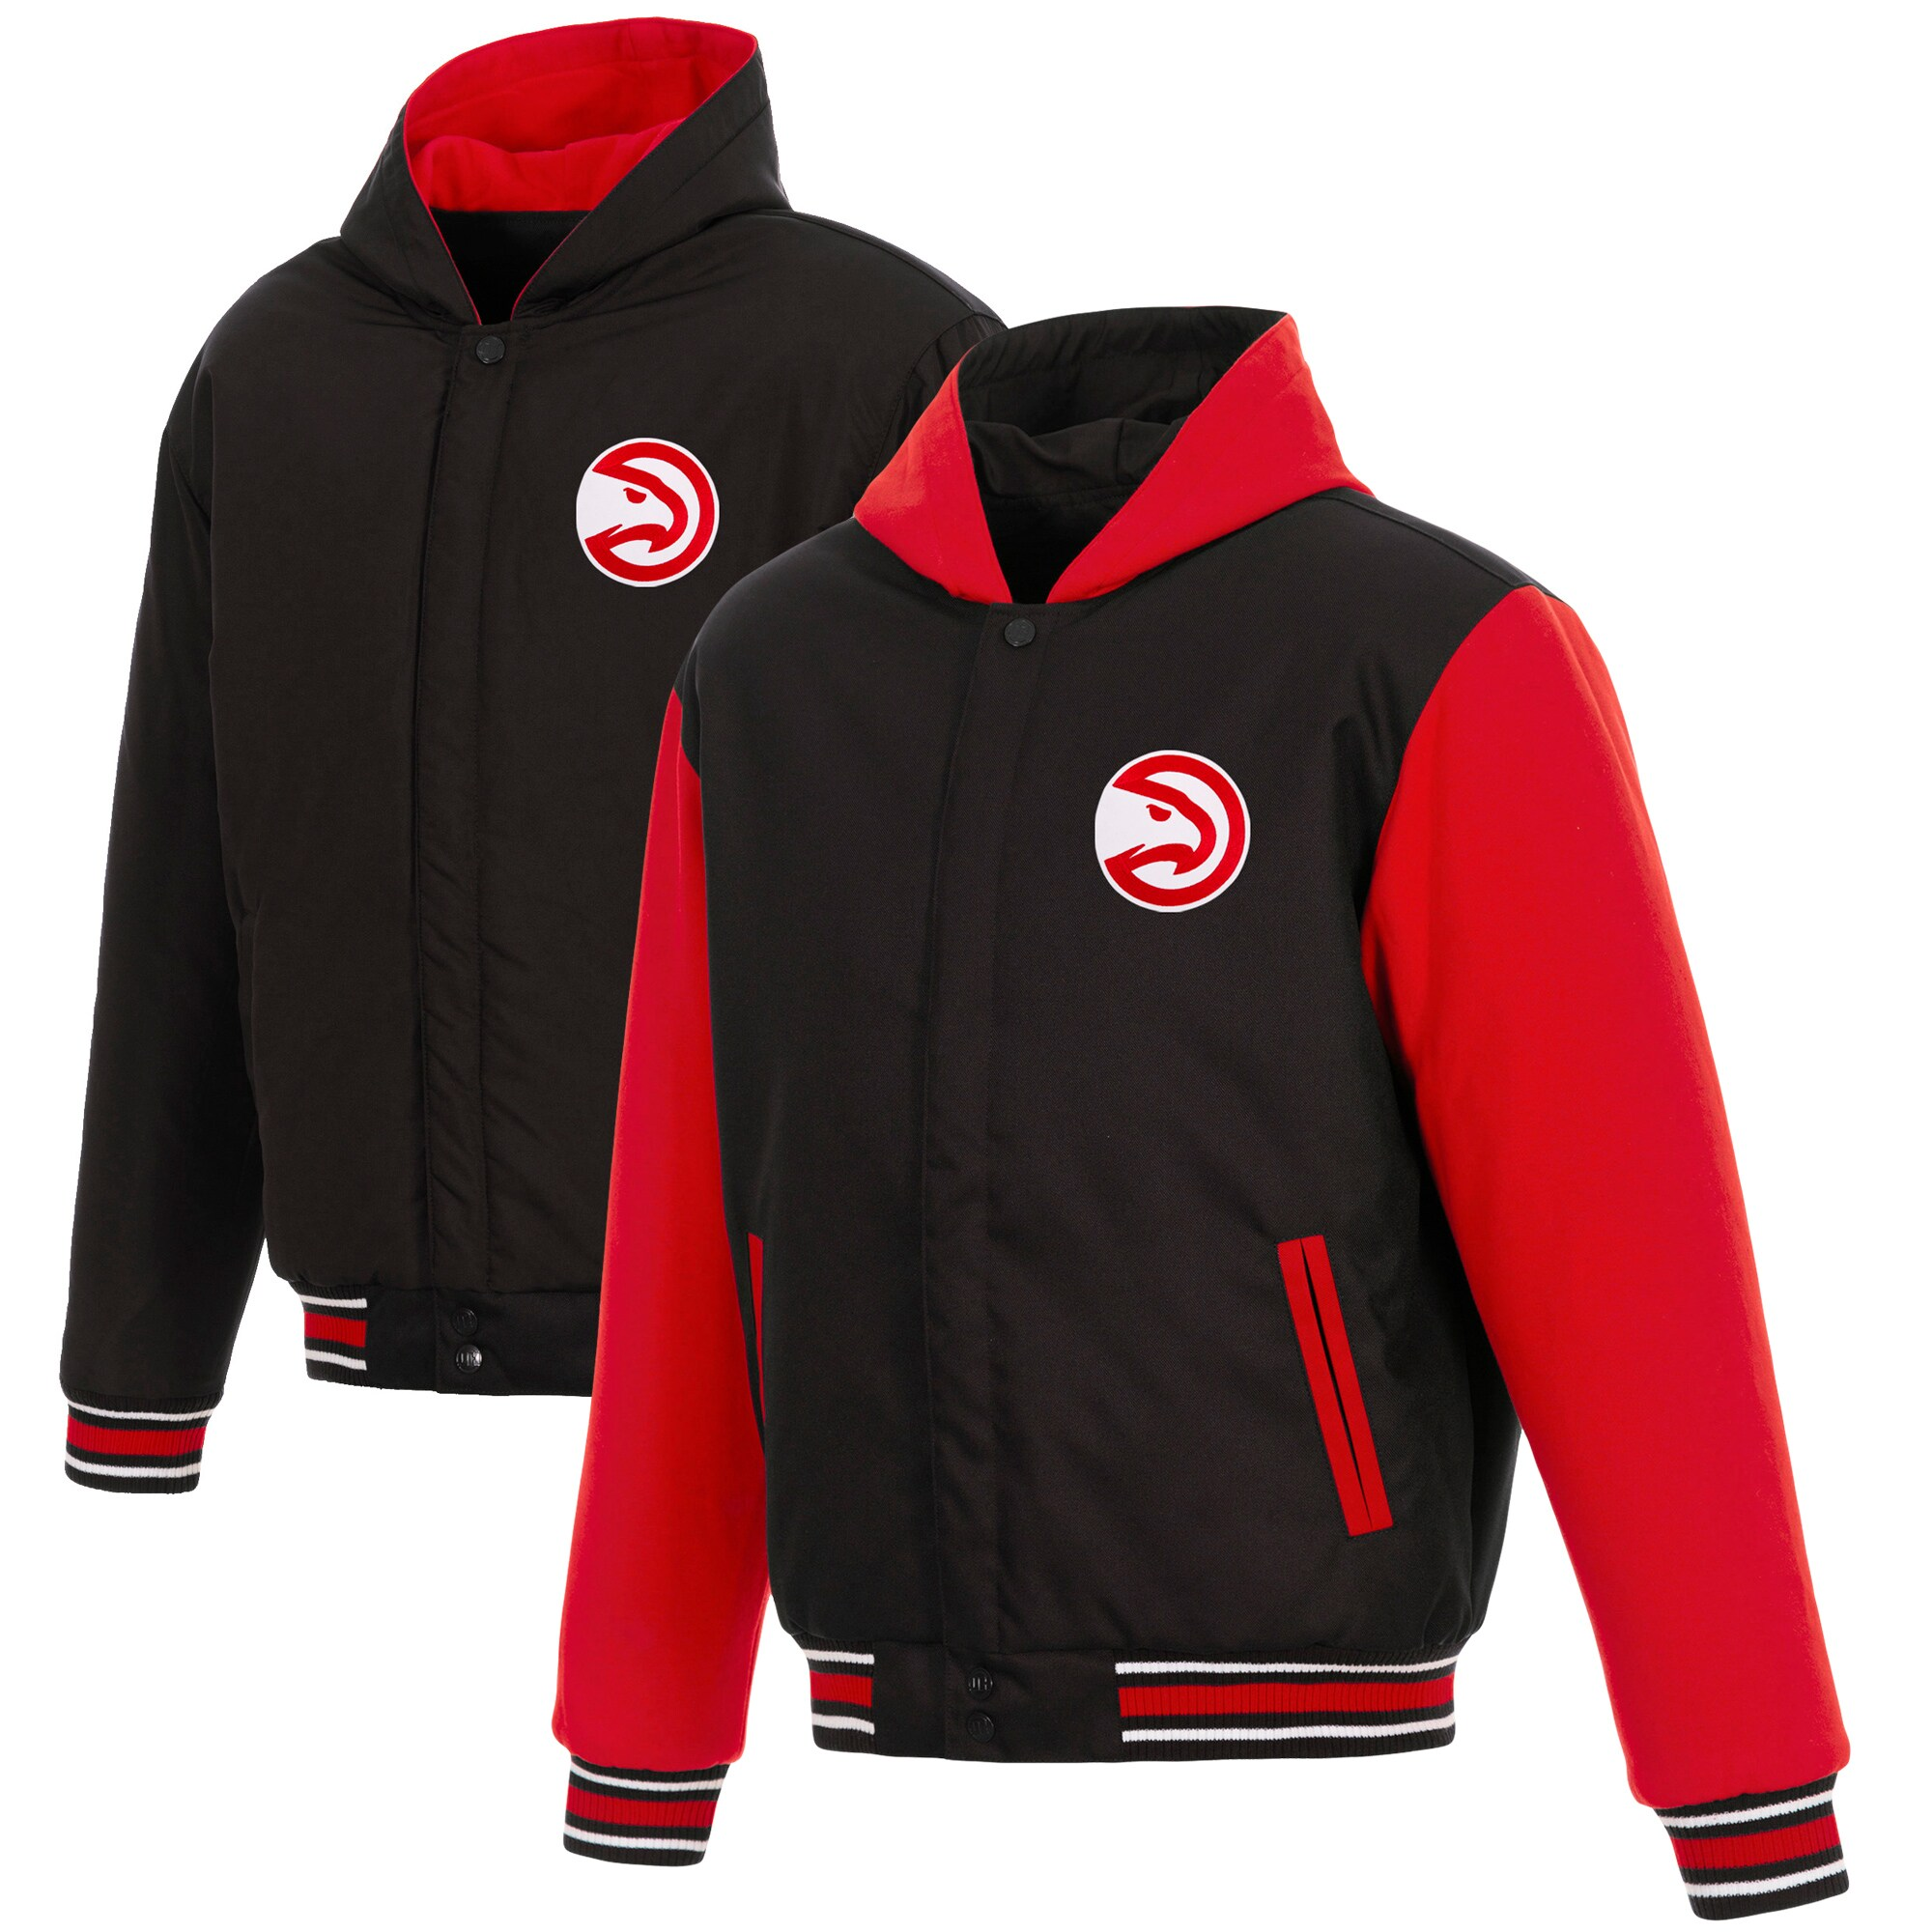 Atlanta Hawks JH Design Reversible Poly-Twill Hooded Jacket with Fleece Sleeves - Black/Red